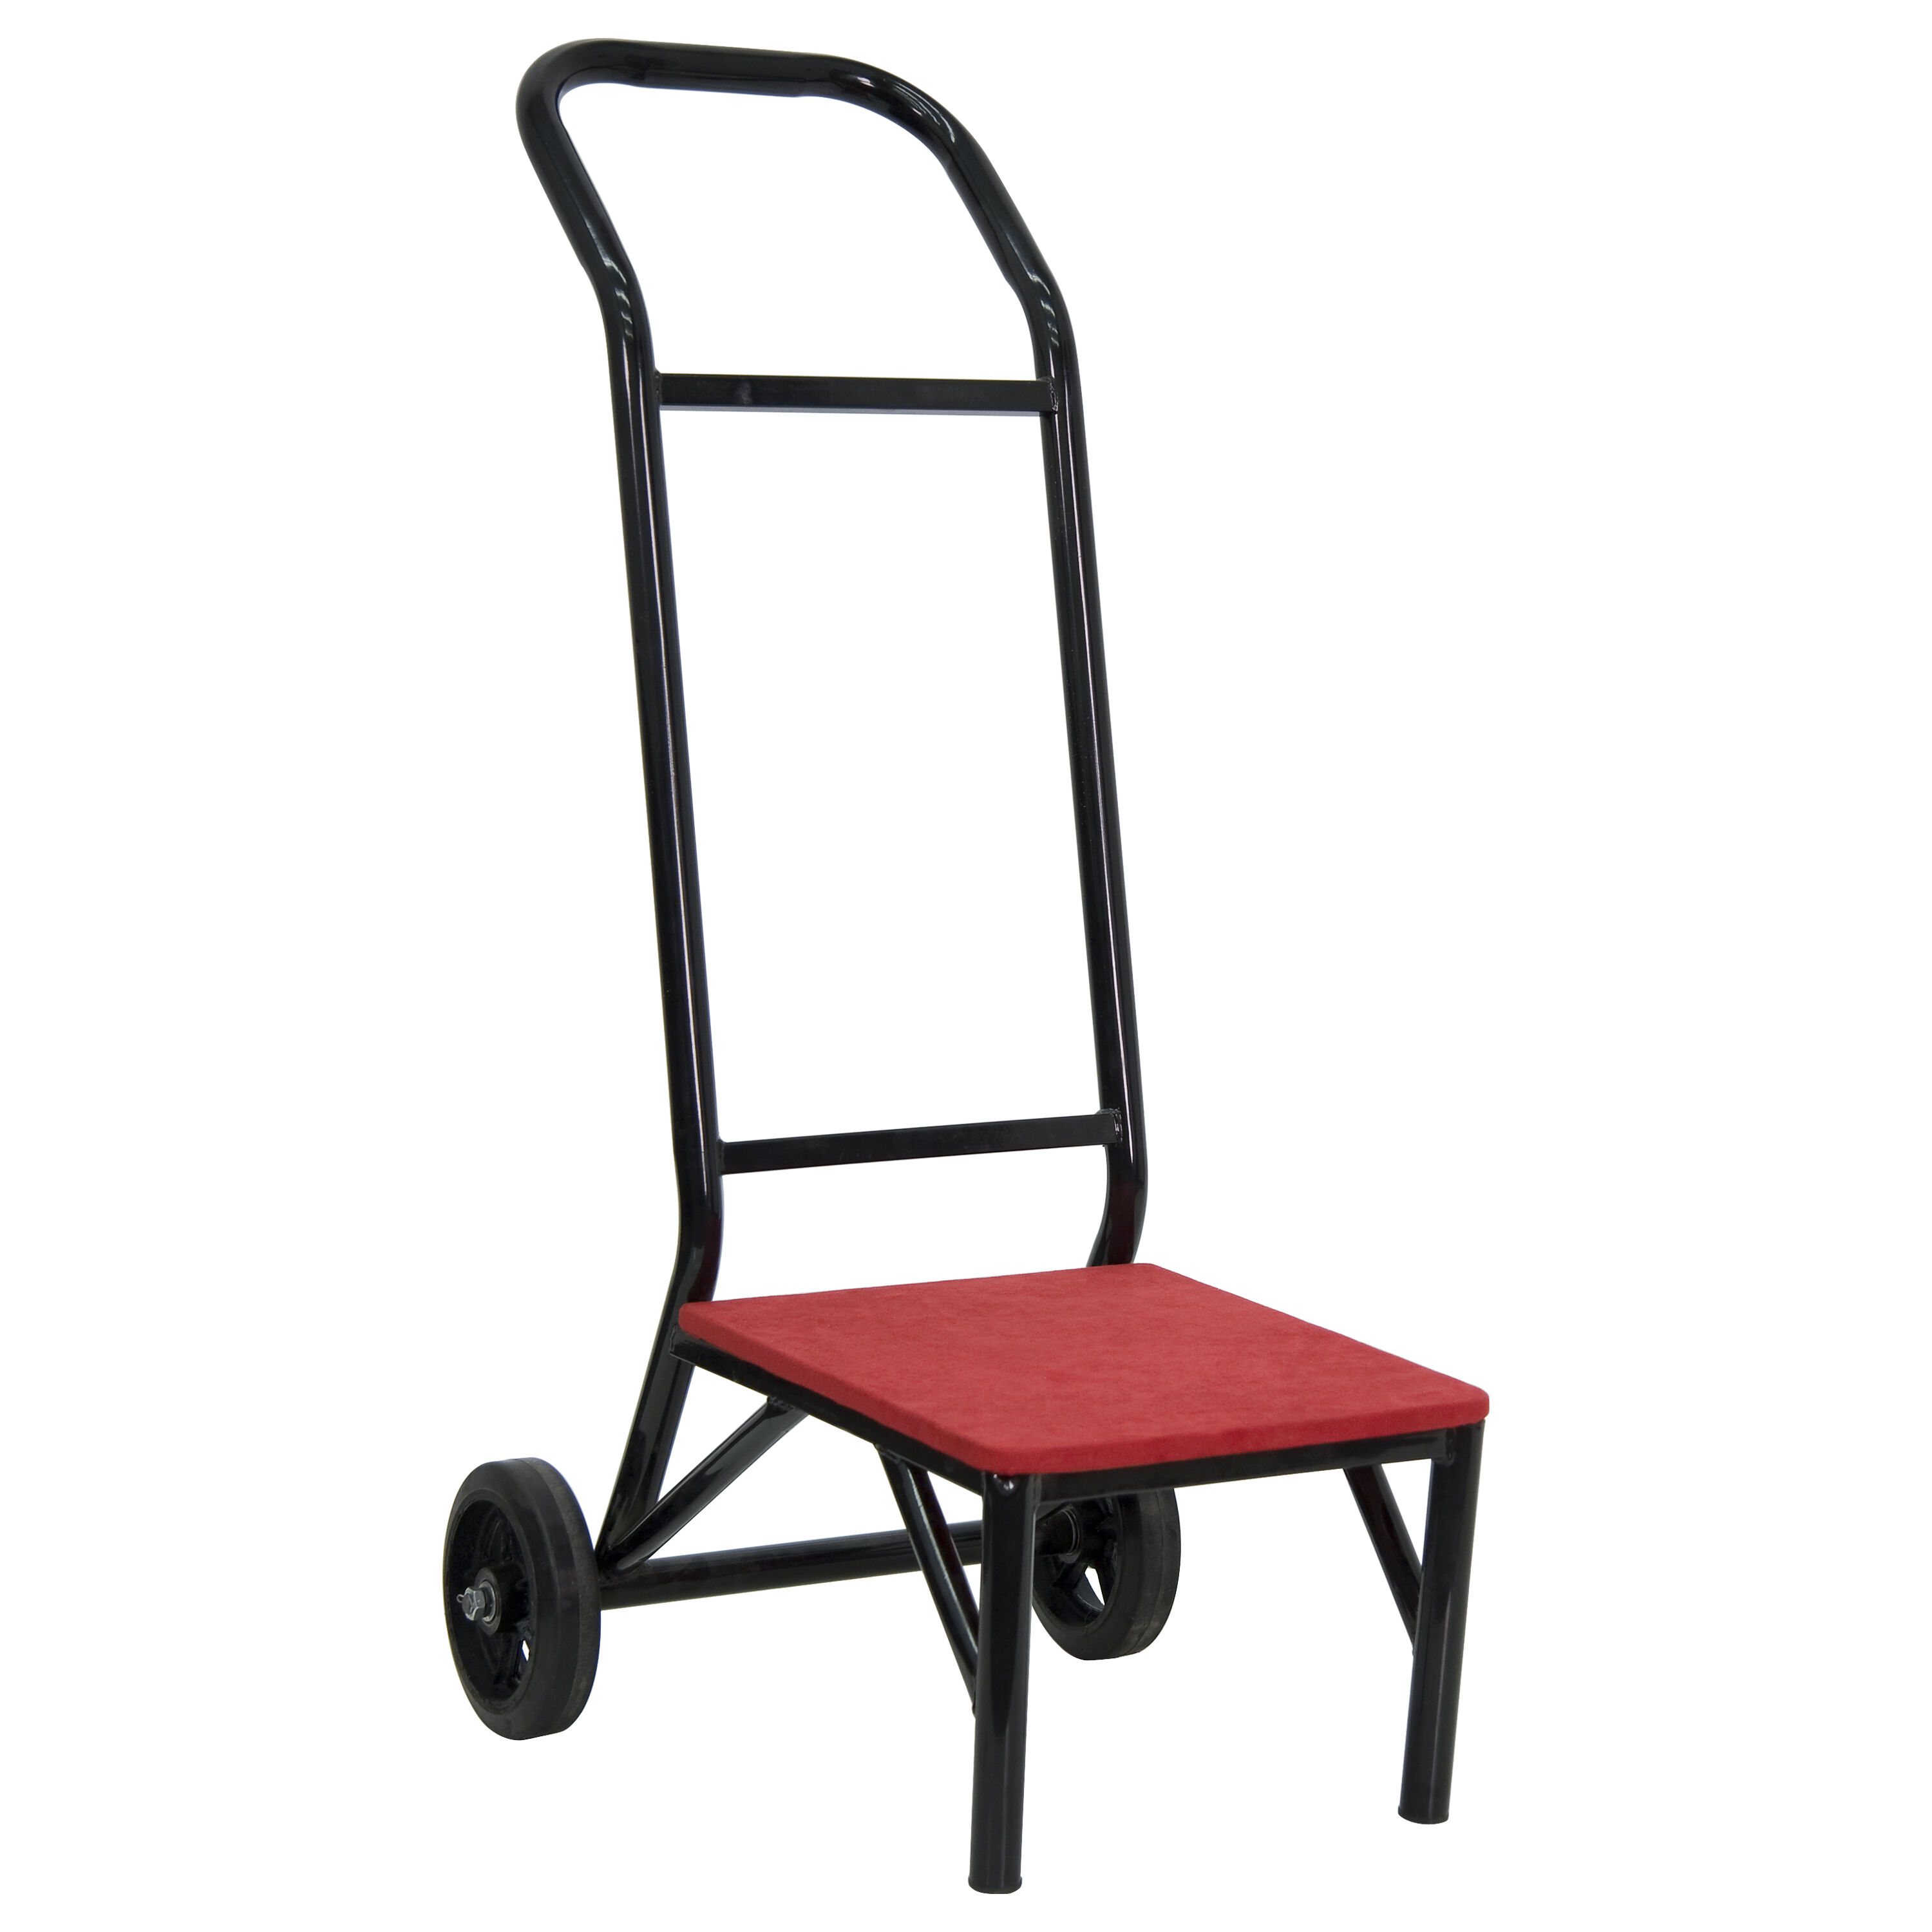 banquet chair trolley reclining gravity chairs stackchairs4less stack dollies dolly